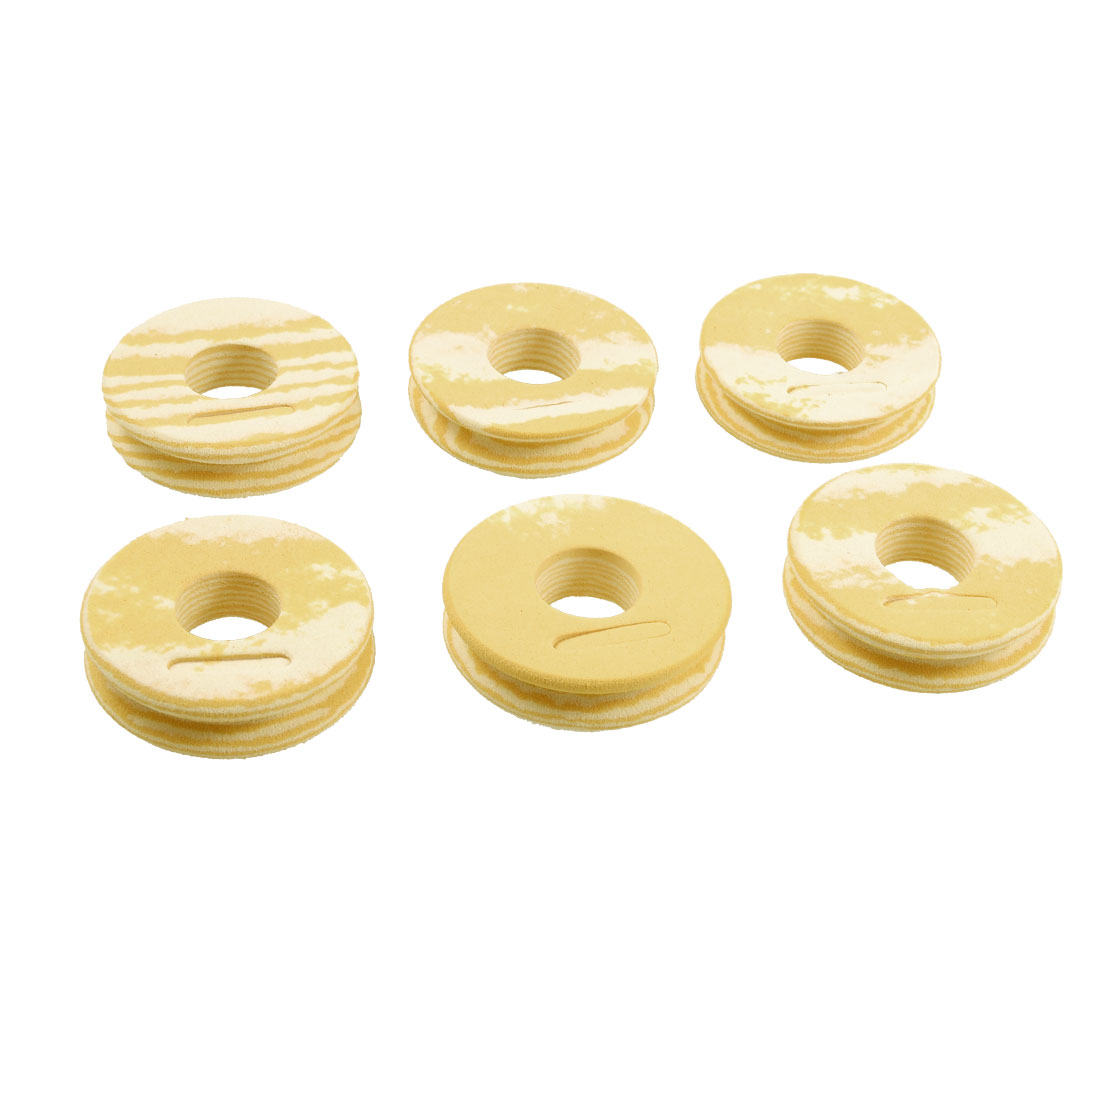 6 PCS Foam Fishing Line Bobbin Spools Set Beige W Blue Box